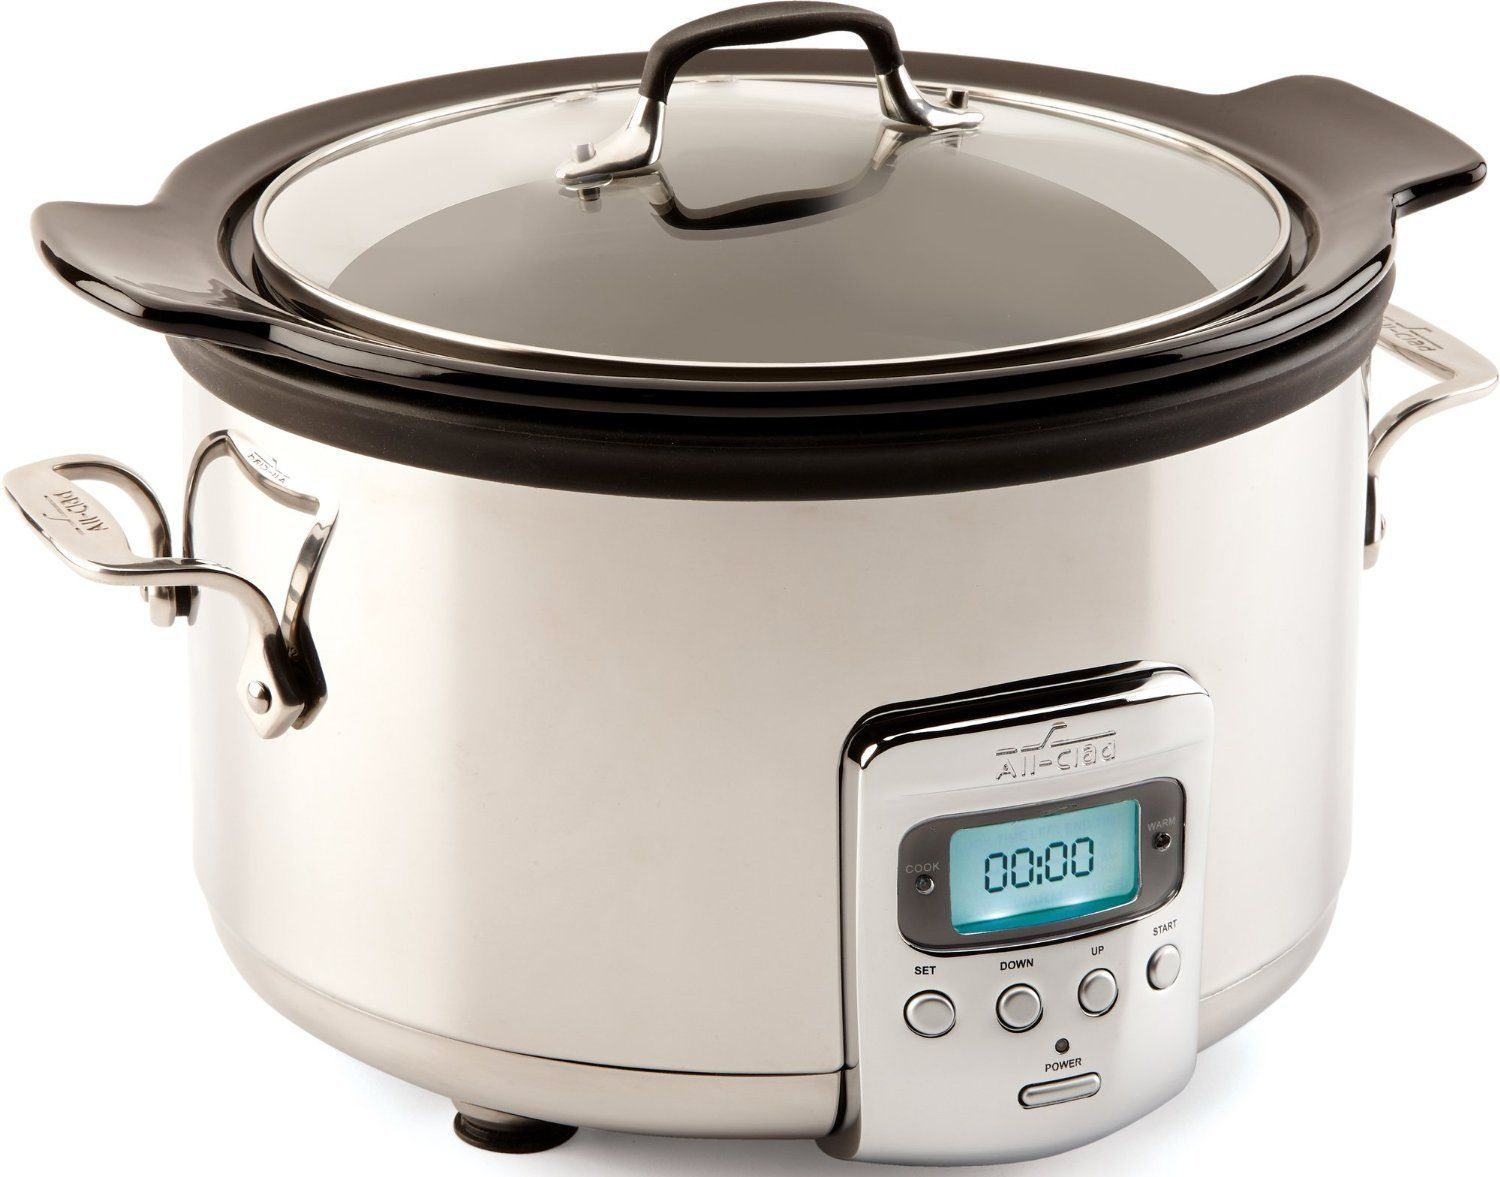 All-Clad SD710851 Slow Cooker with Black Ceramic Insert & glass lid 4 quart by All-Clad